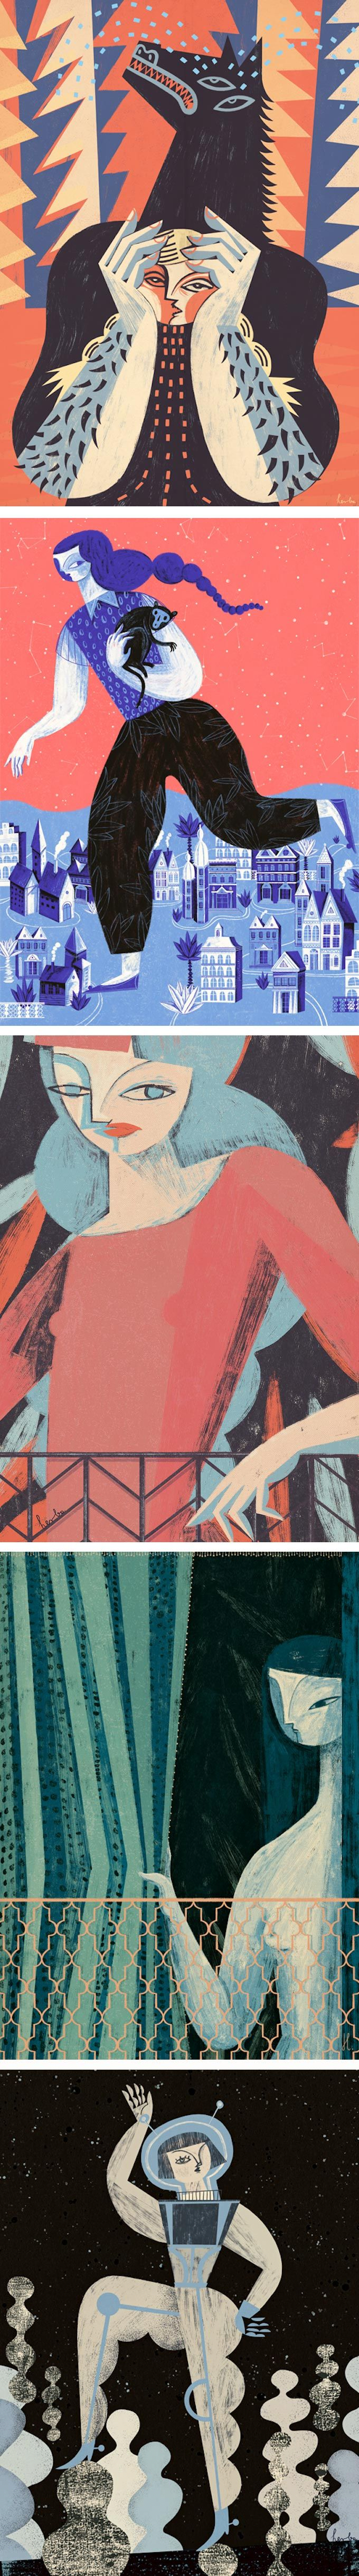 Gosia Herba Keeps Cubism Alive and Well in Her Illustrations